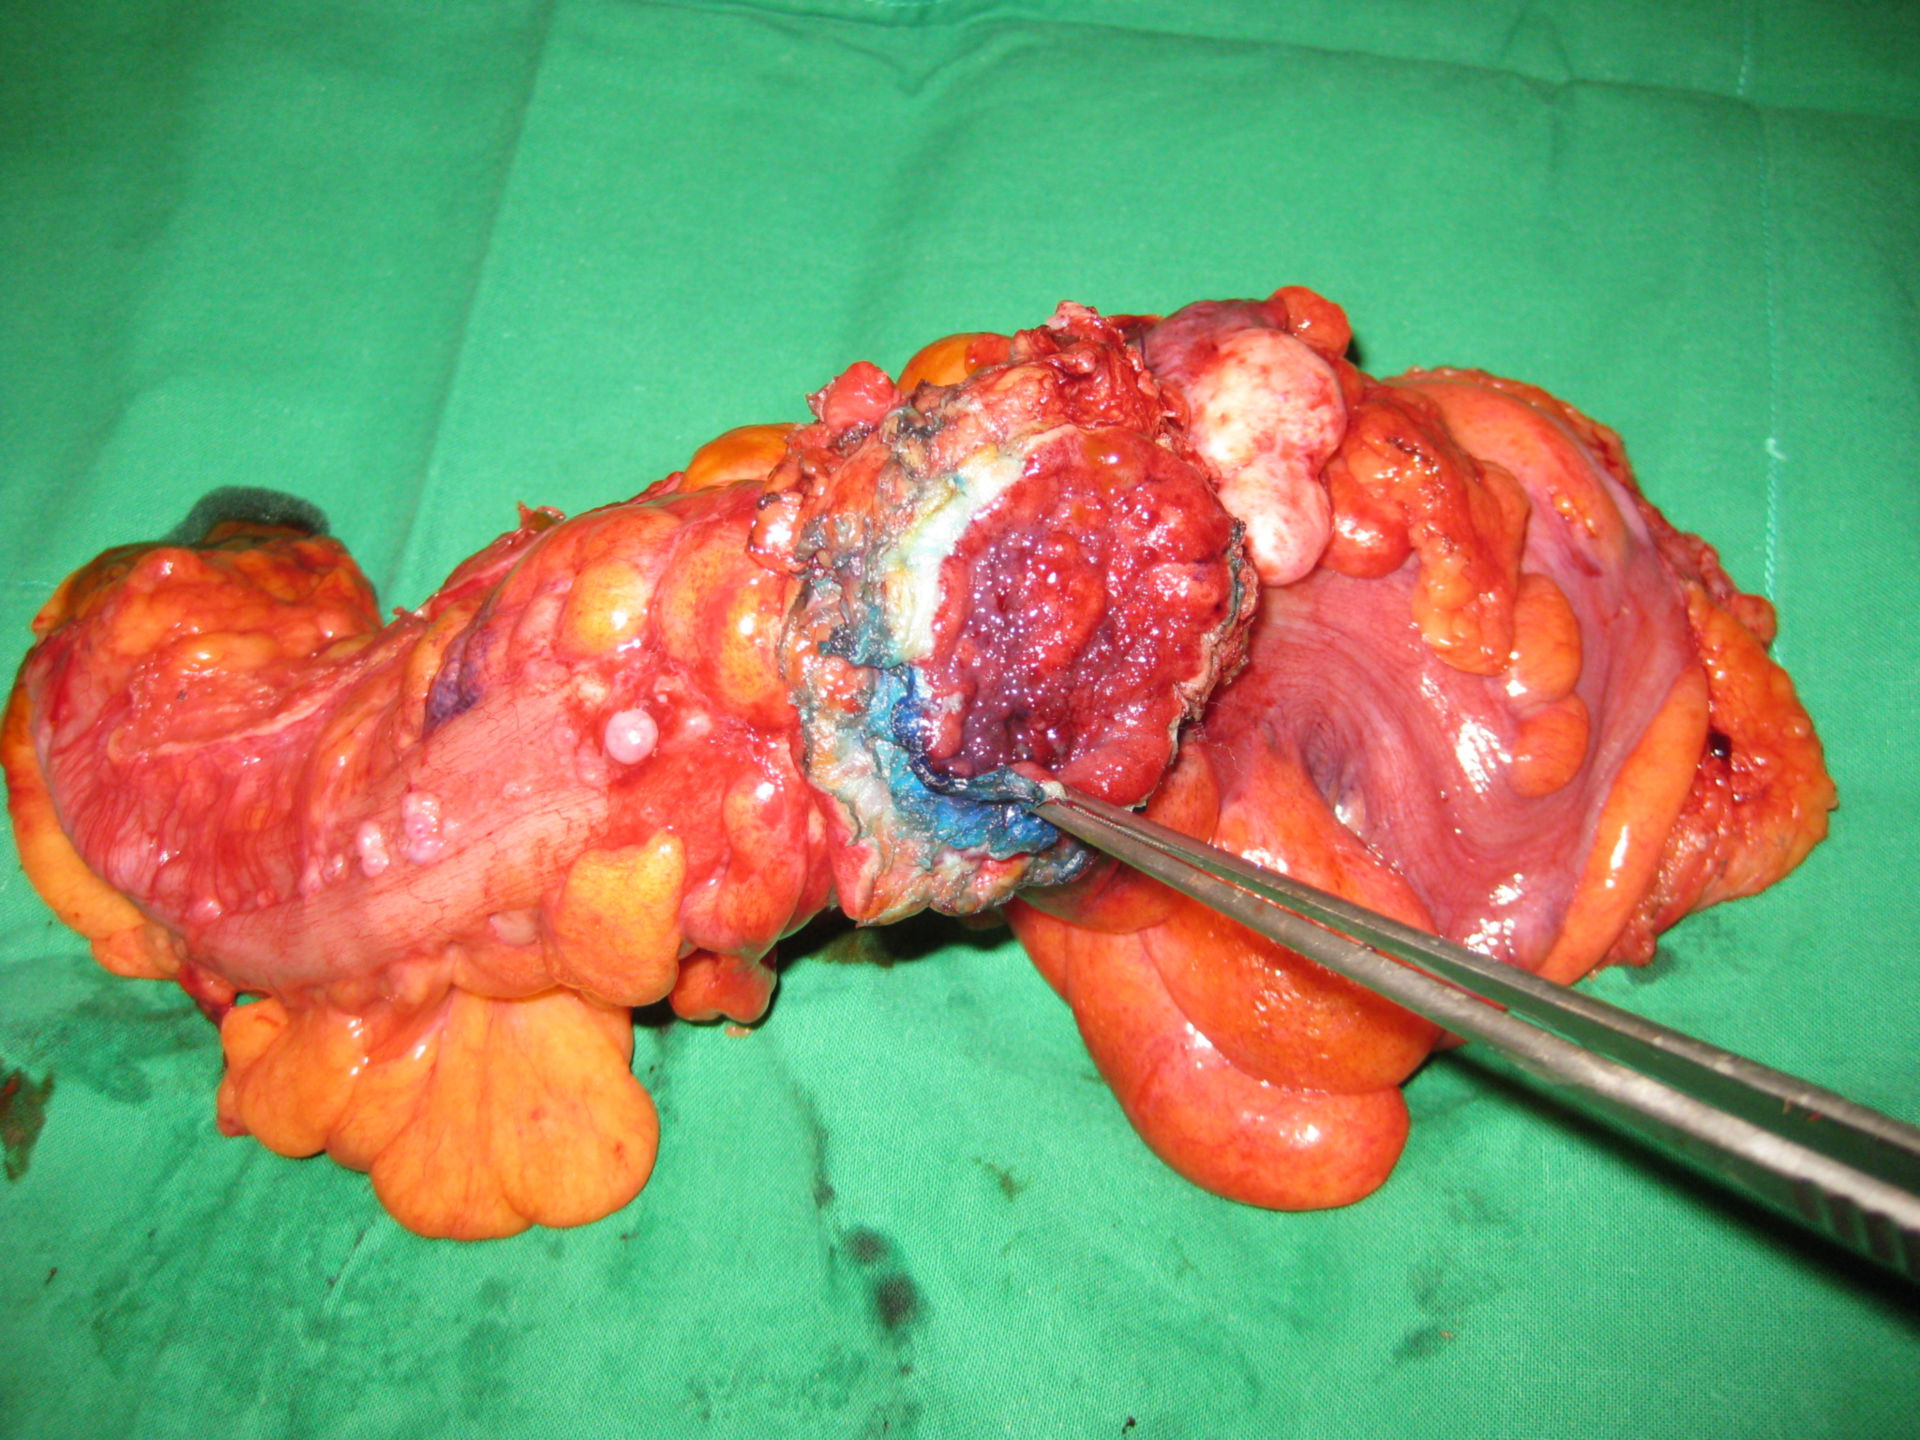 Carcinoma of the sigmoid colon T4N2M1